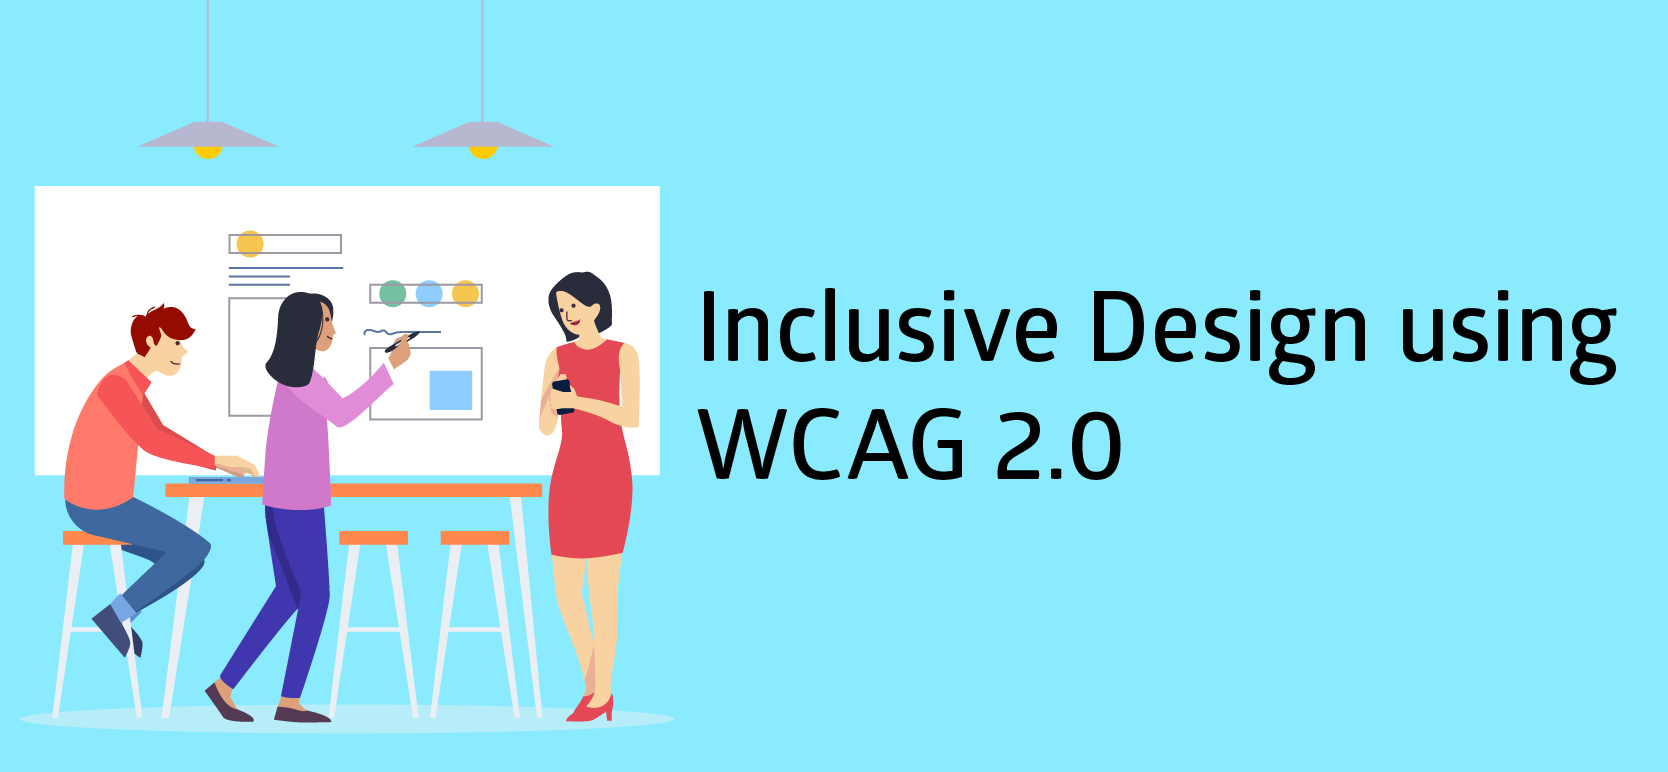 Idea Theorem - Inclusive Design using WCAG 2.0